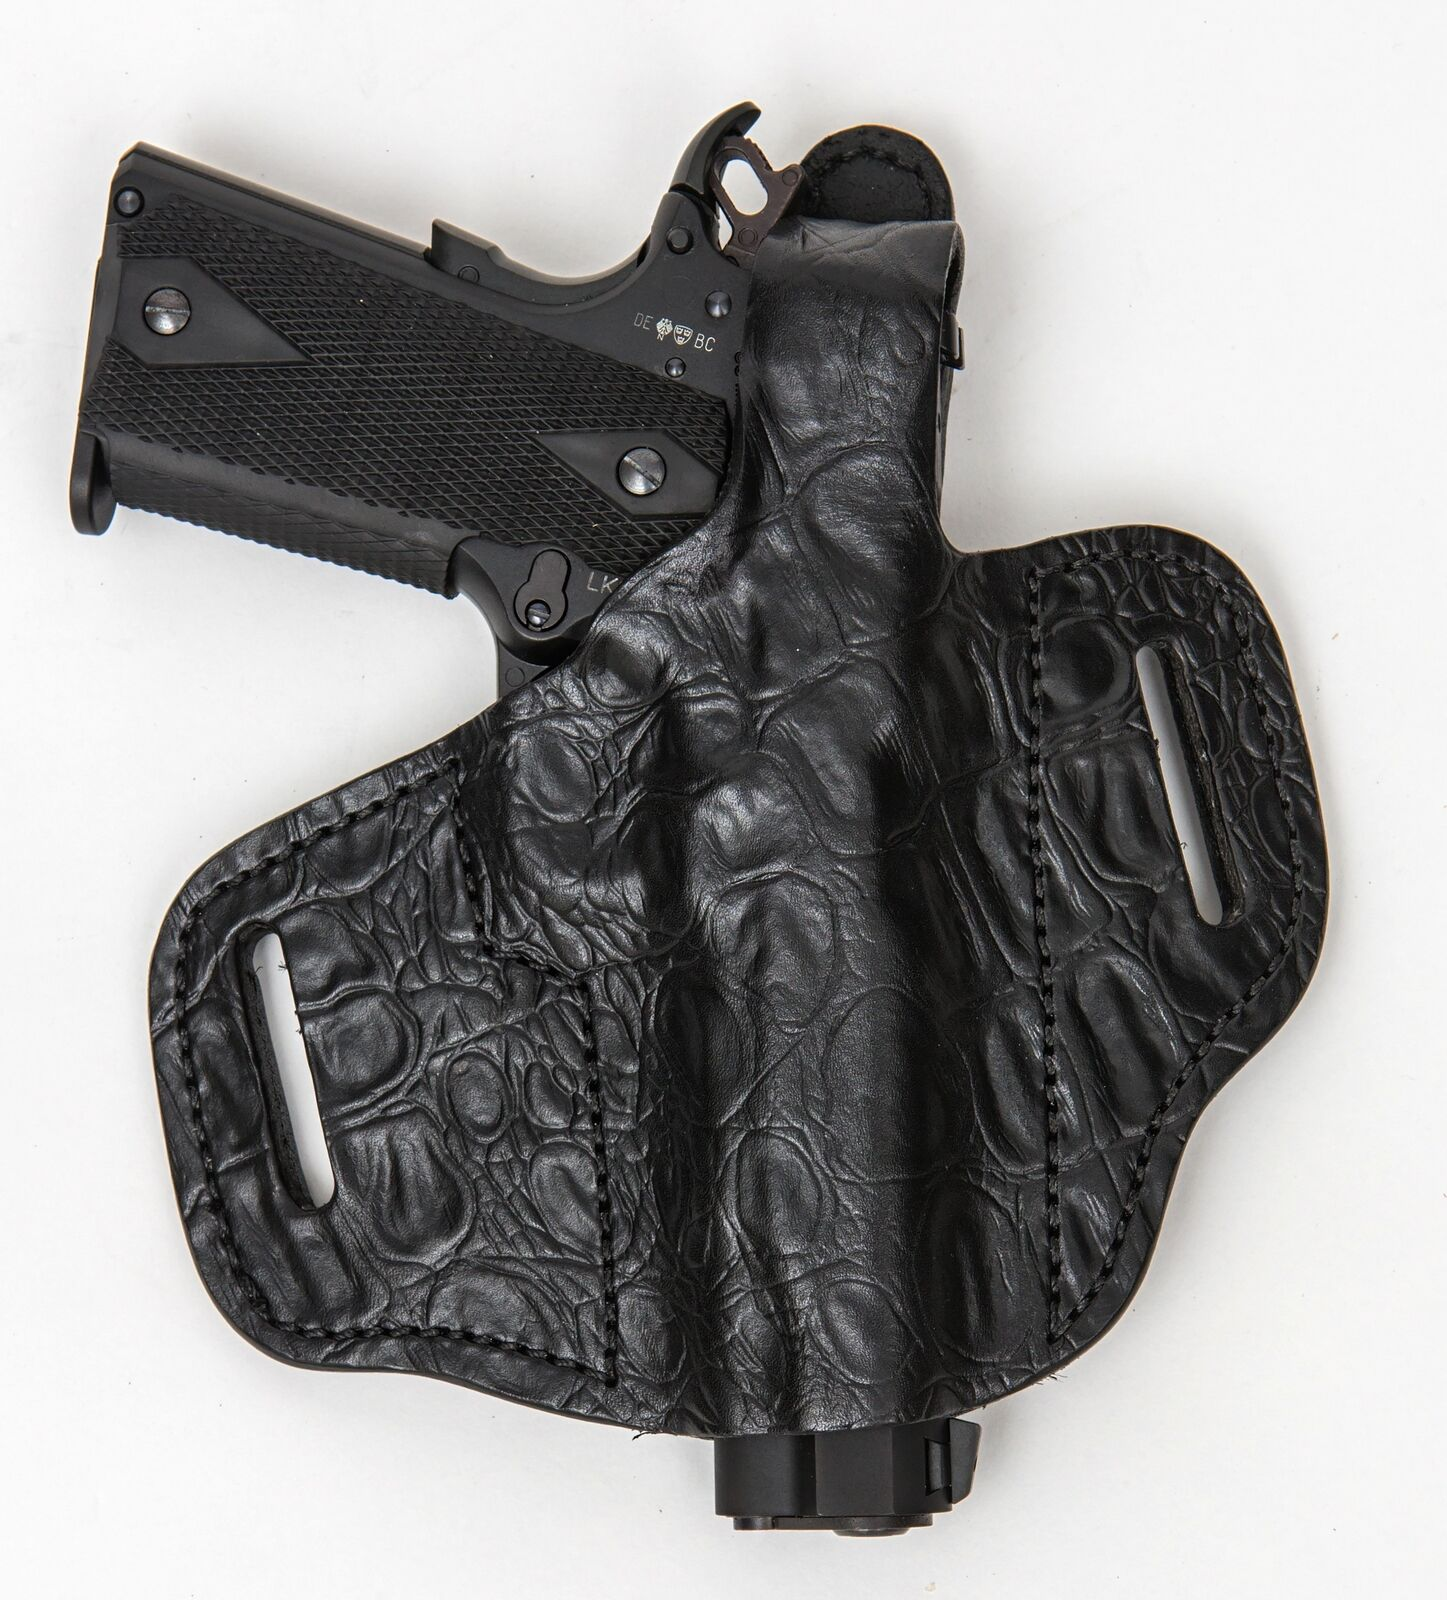 On Duty Conceal RH LH OWB Leder Gun Holster For 1911 4-4.25